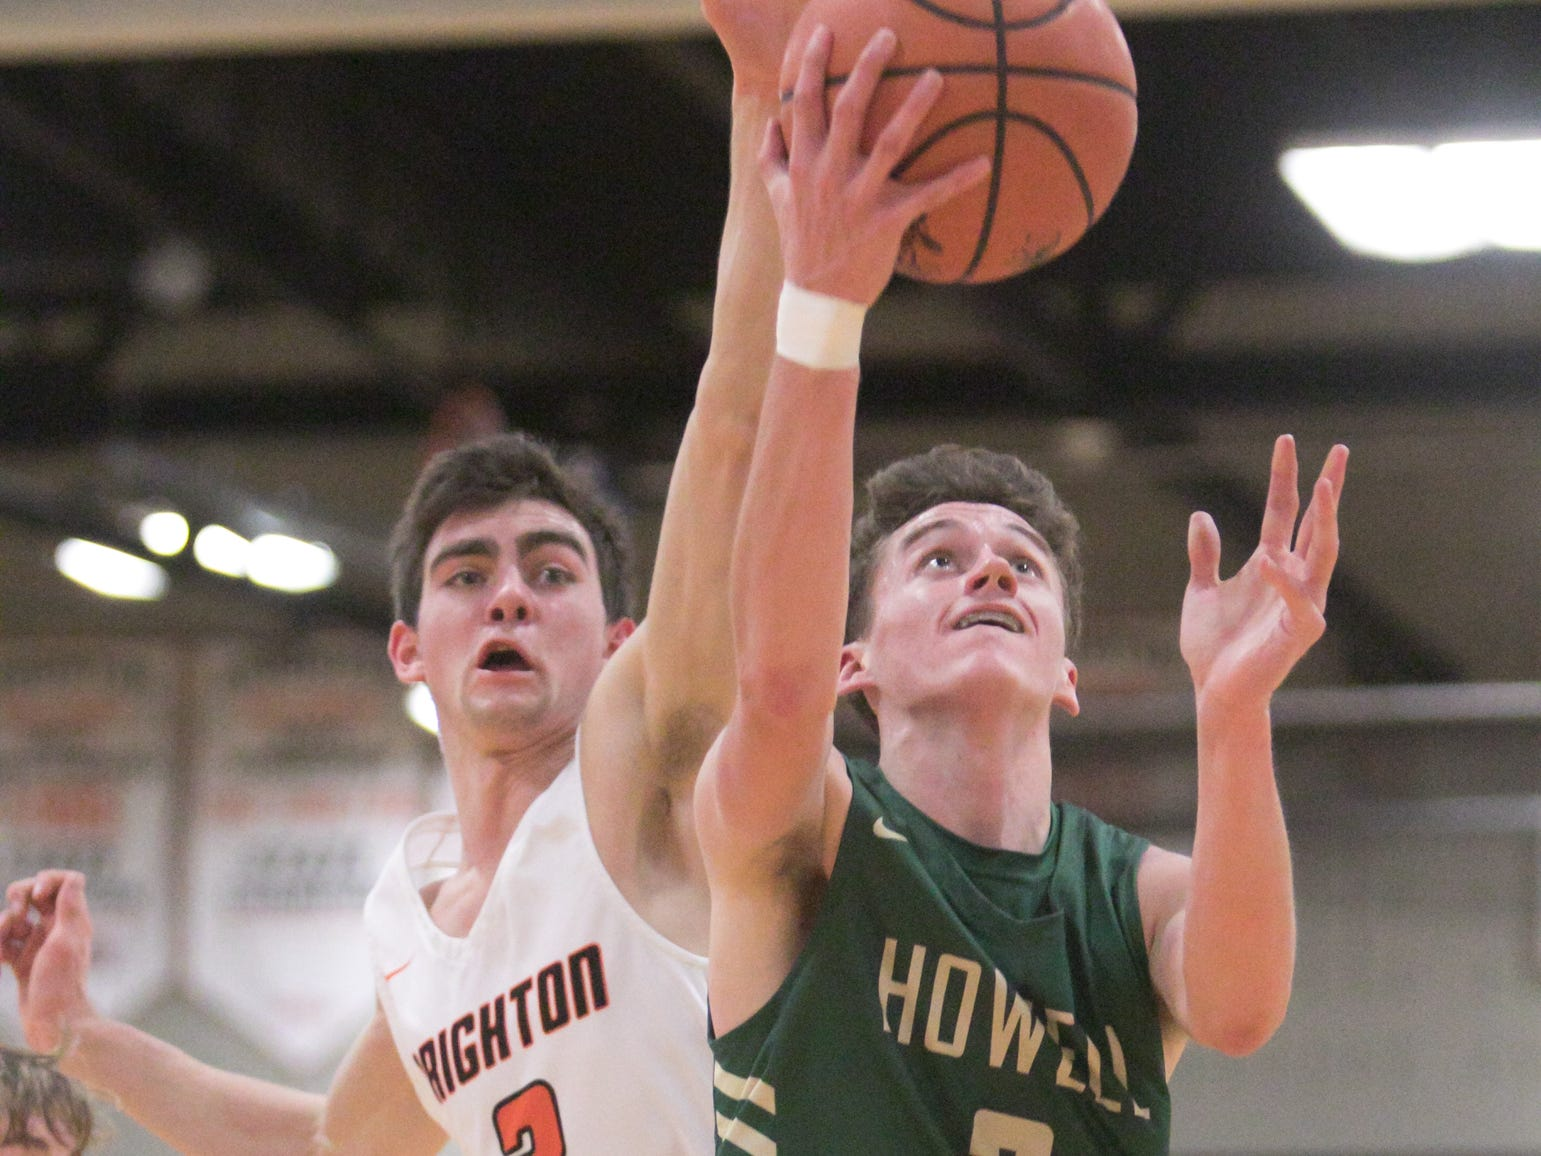 Howell's Kip French increases the Highlanders' lead in the third quarter of the game against Brighton Tuesday, Jan. 8, 2019, with Brighton's Nolan Ehman guarding him.